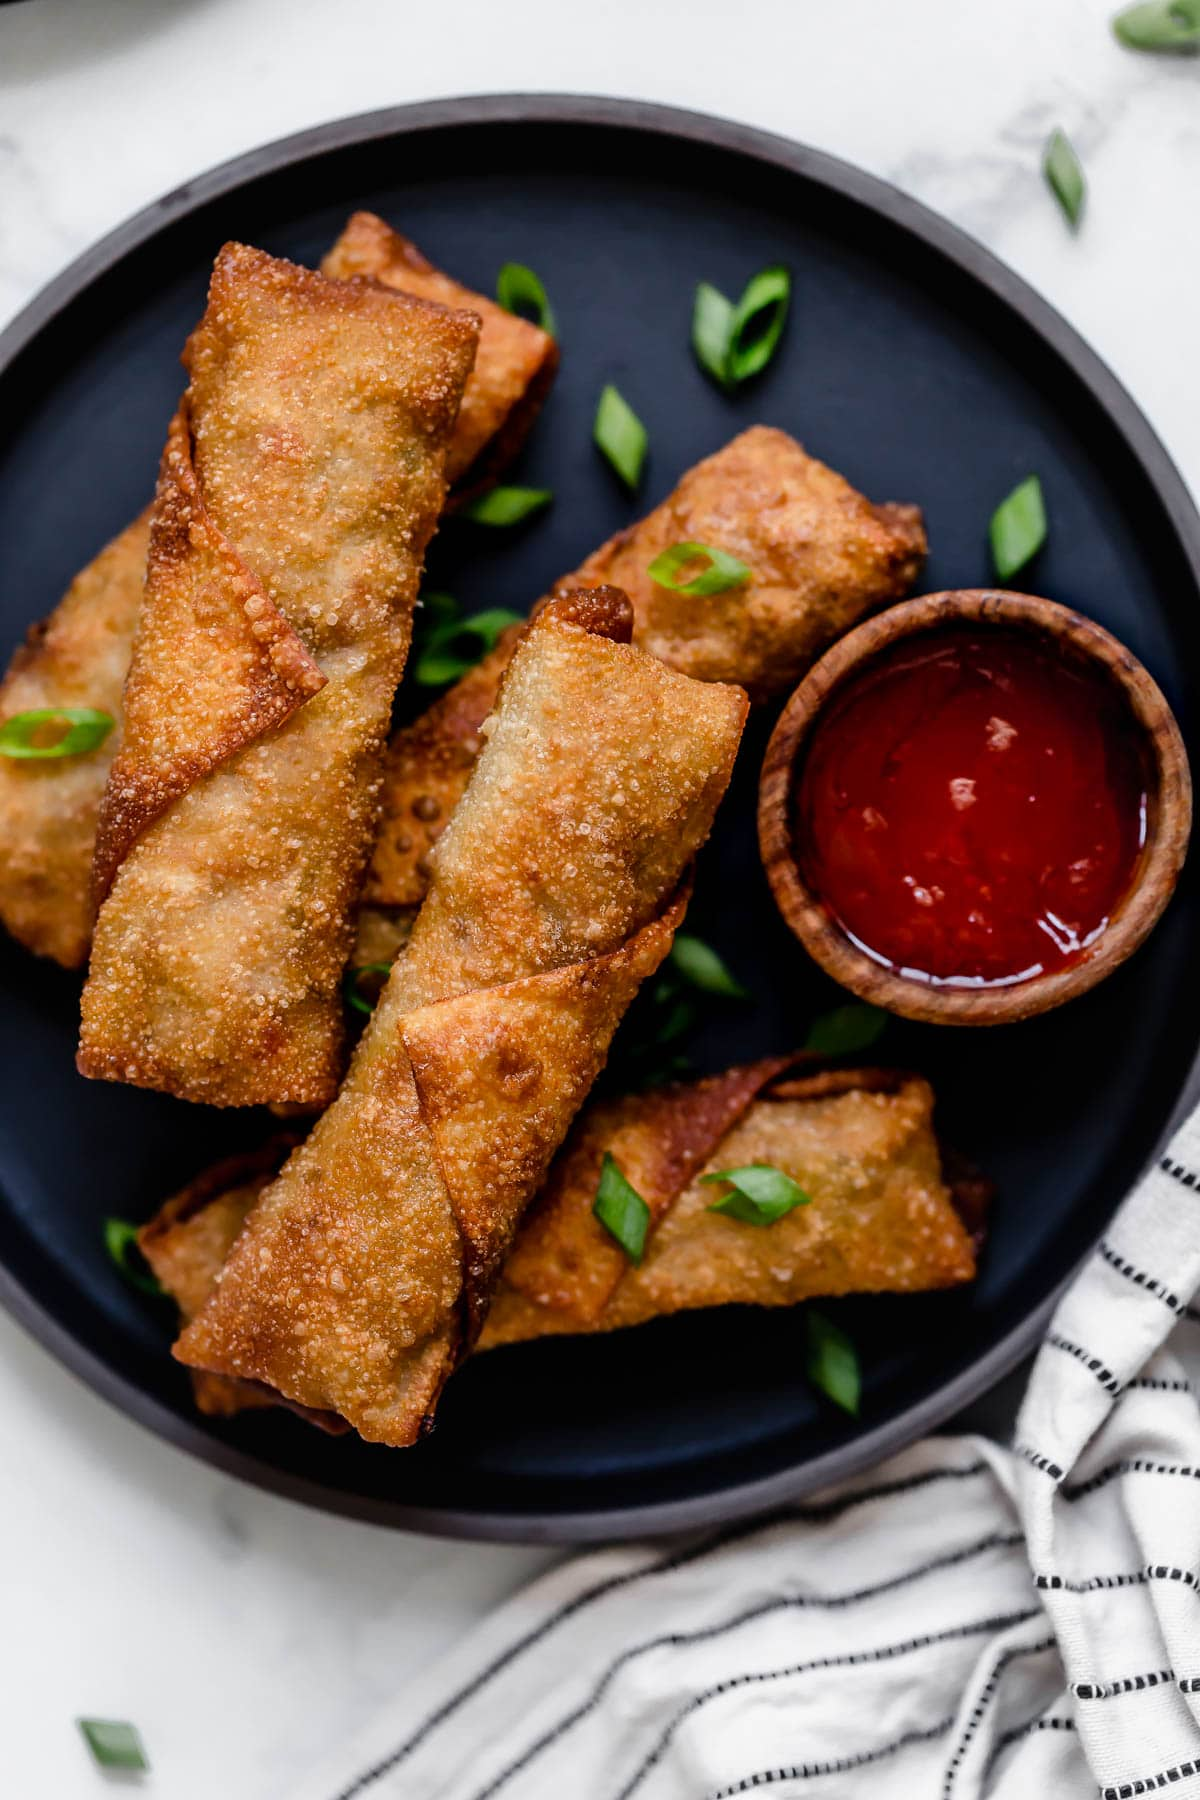 Five egg rolls on a dark plate with a side of dipping sauce.